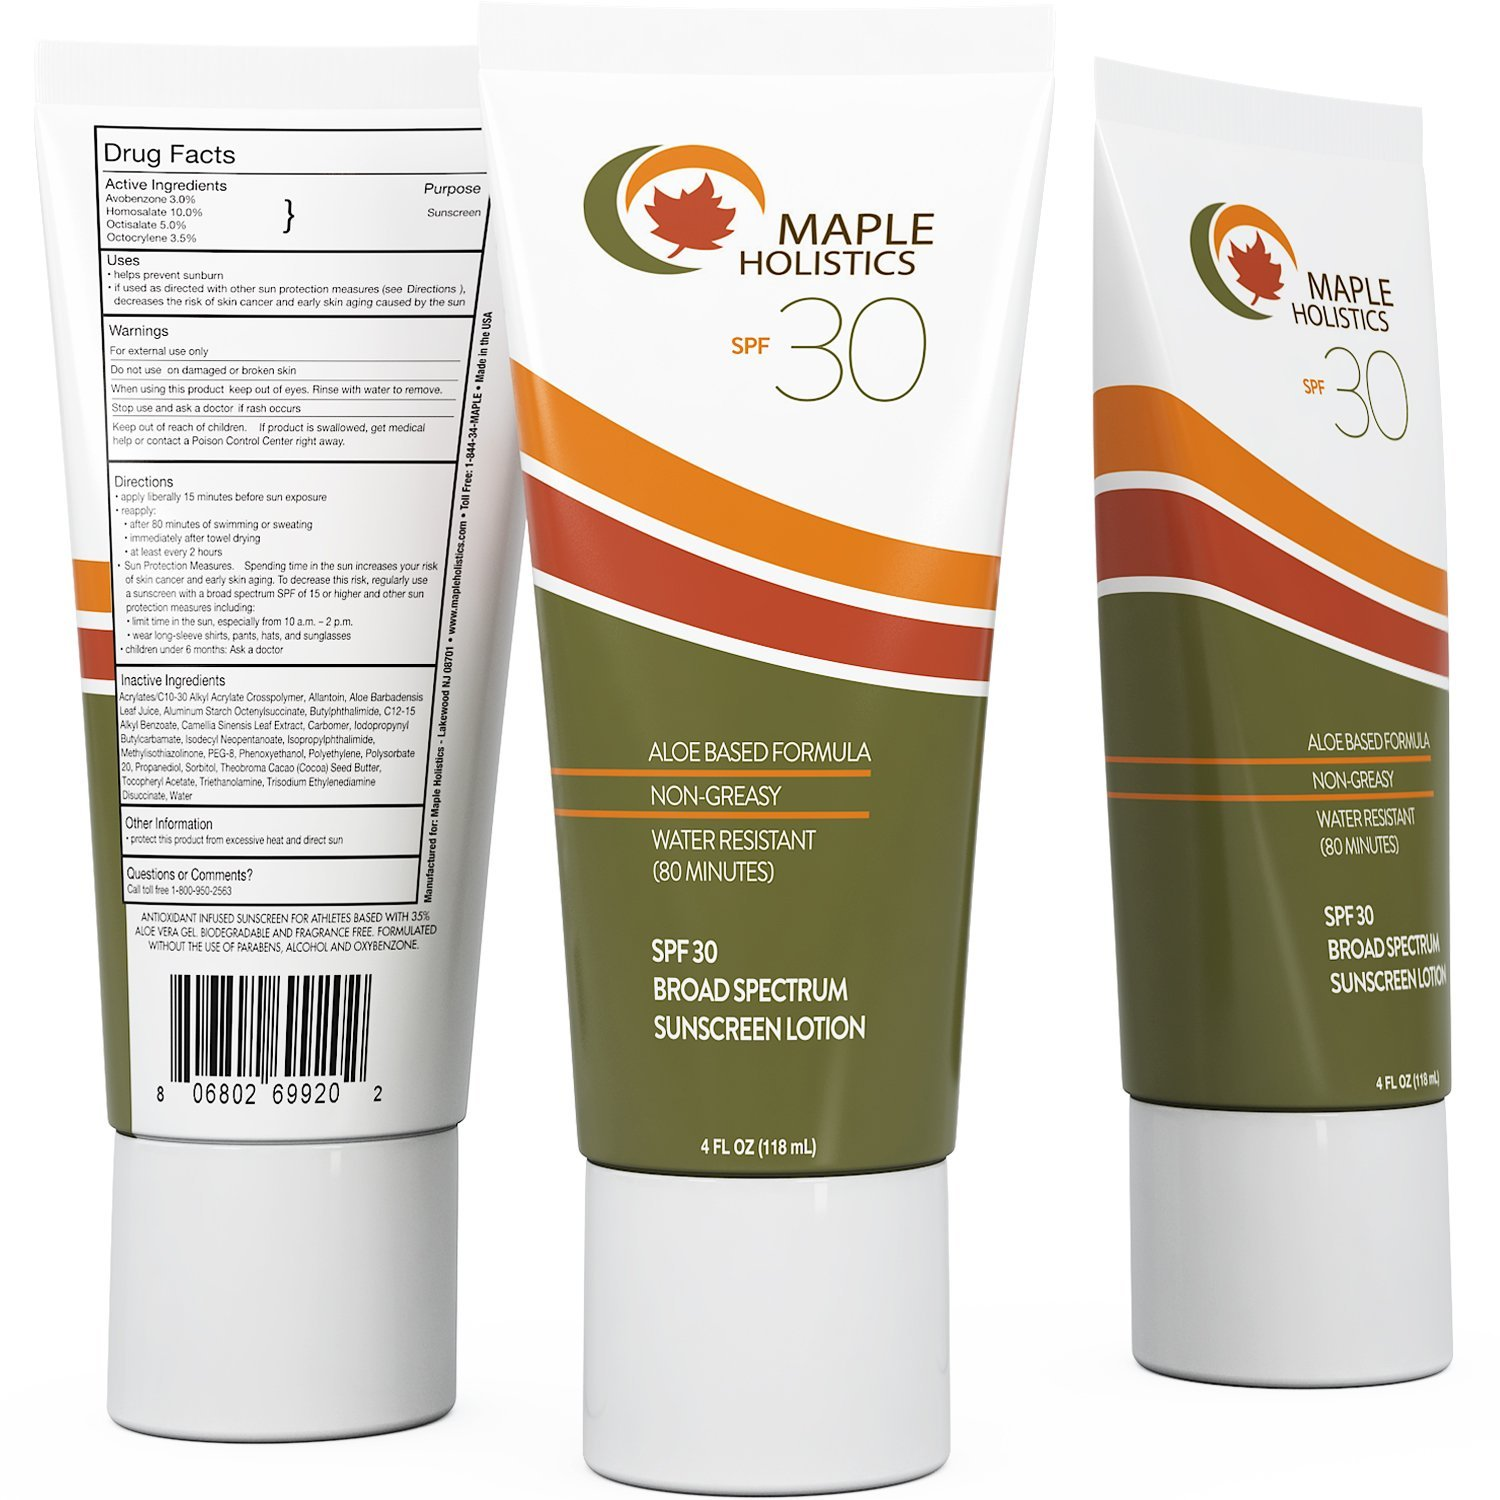 Natural Broad Spectrum Sunscreen SPF 30 - Antioxidant Infused Sunblock Face Lotion for Women and Men - Suntan Lotion for Sensitive Skin - Water Resistant and Sweat Resistant with Moisturizing Aloe